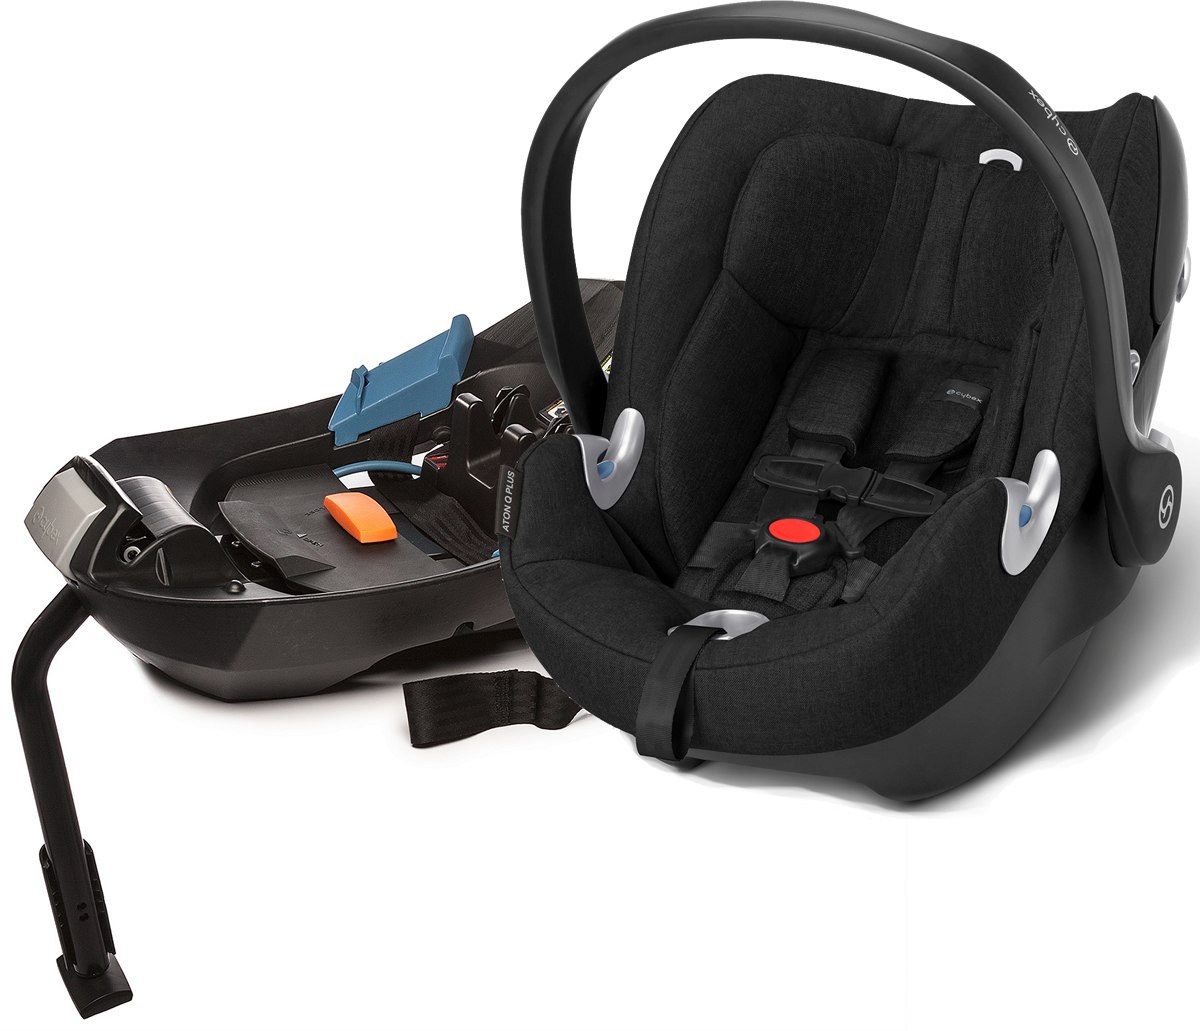 Cybex Aton Q Plus Infant Car Seat Black Beauty